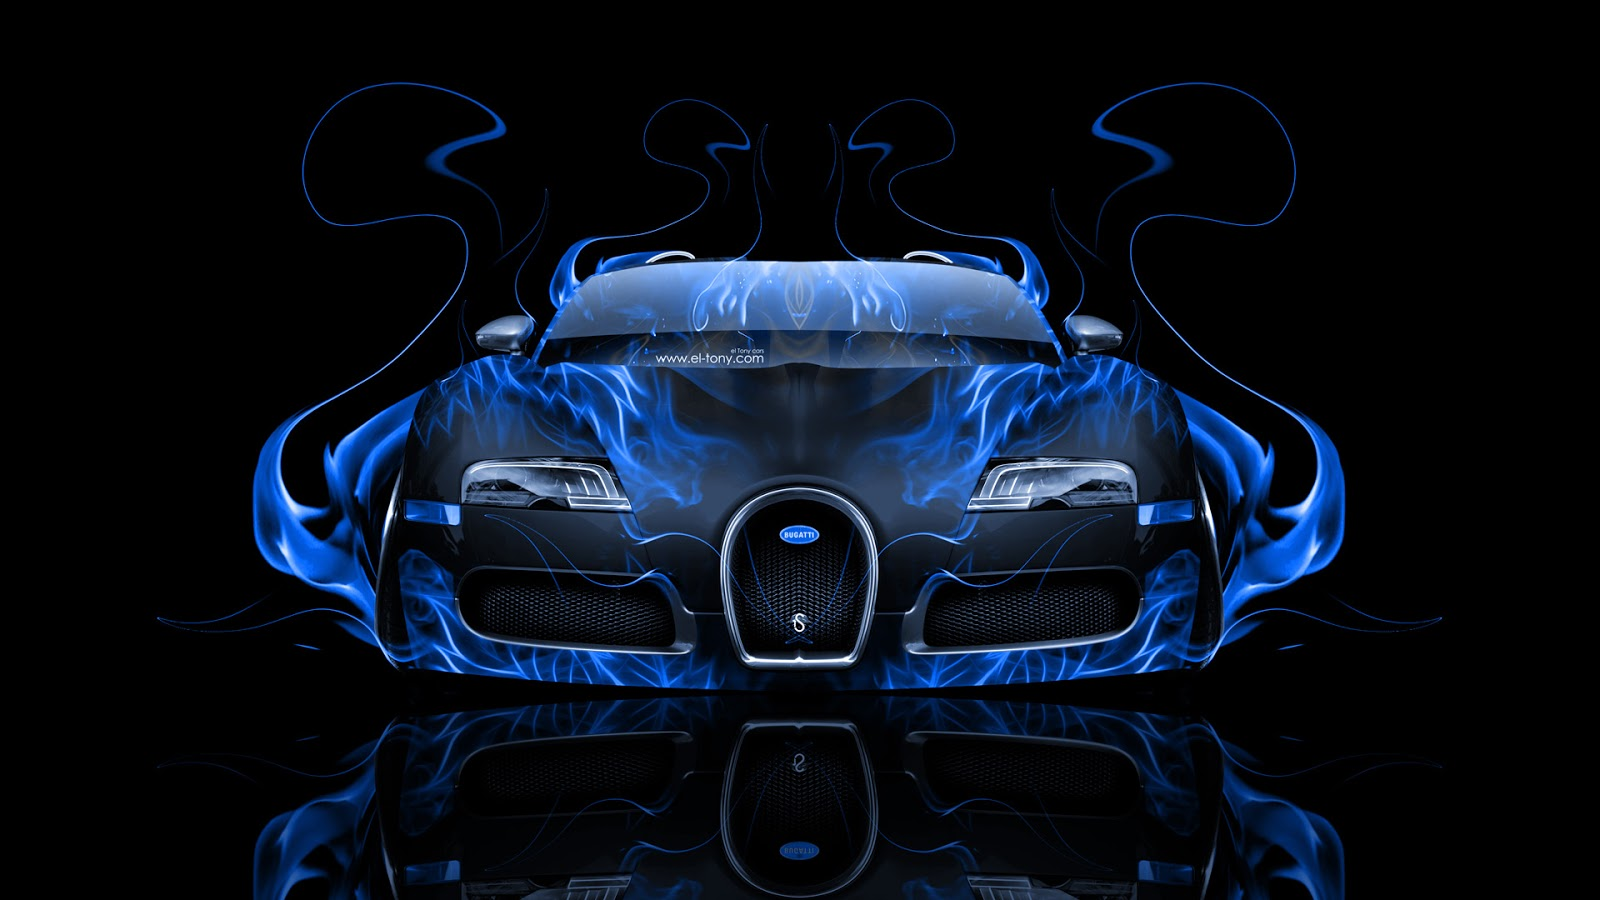 cool bugatti wallpapers backgrounds for free download. Black Bedroom Furniture Sets. Home Design Ideas